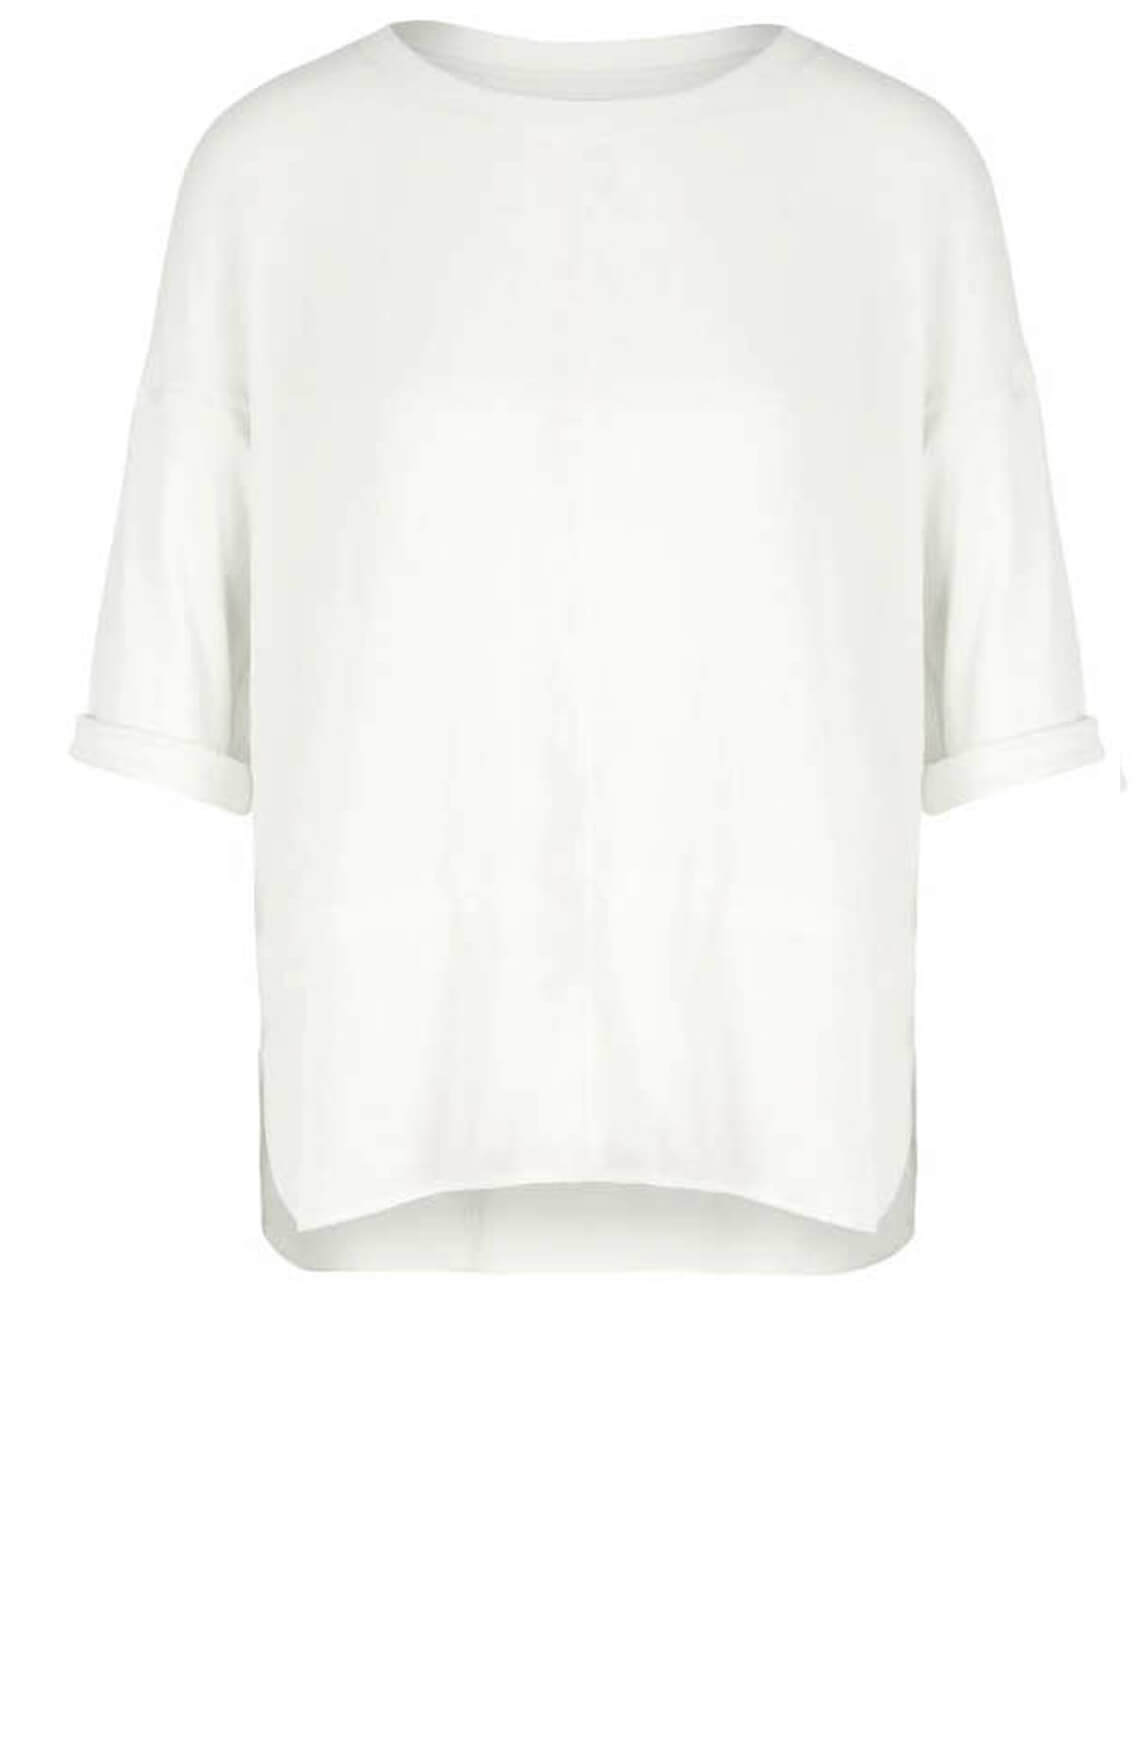 Marccain Sports Dames Blouseshirt wit